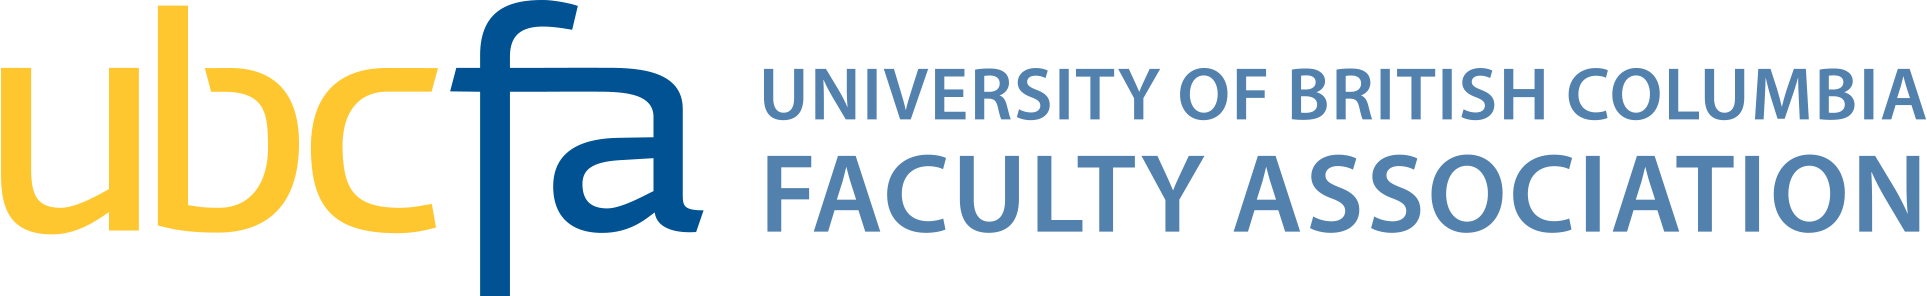 University of British Columbia Faculty Association